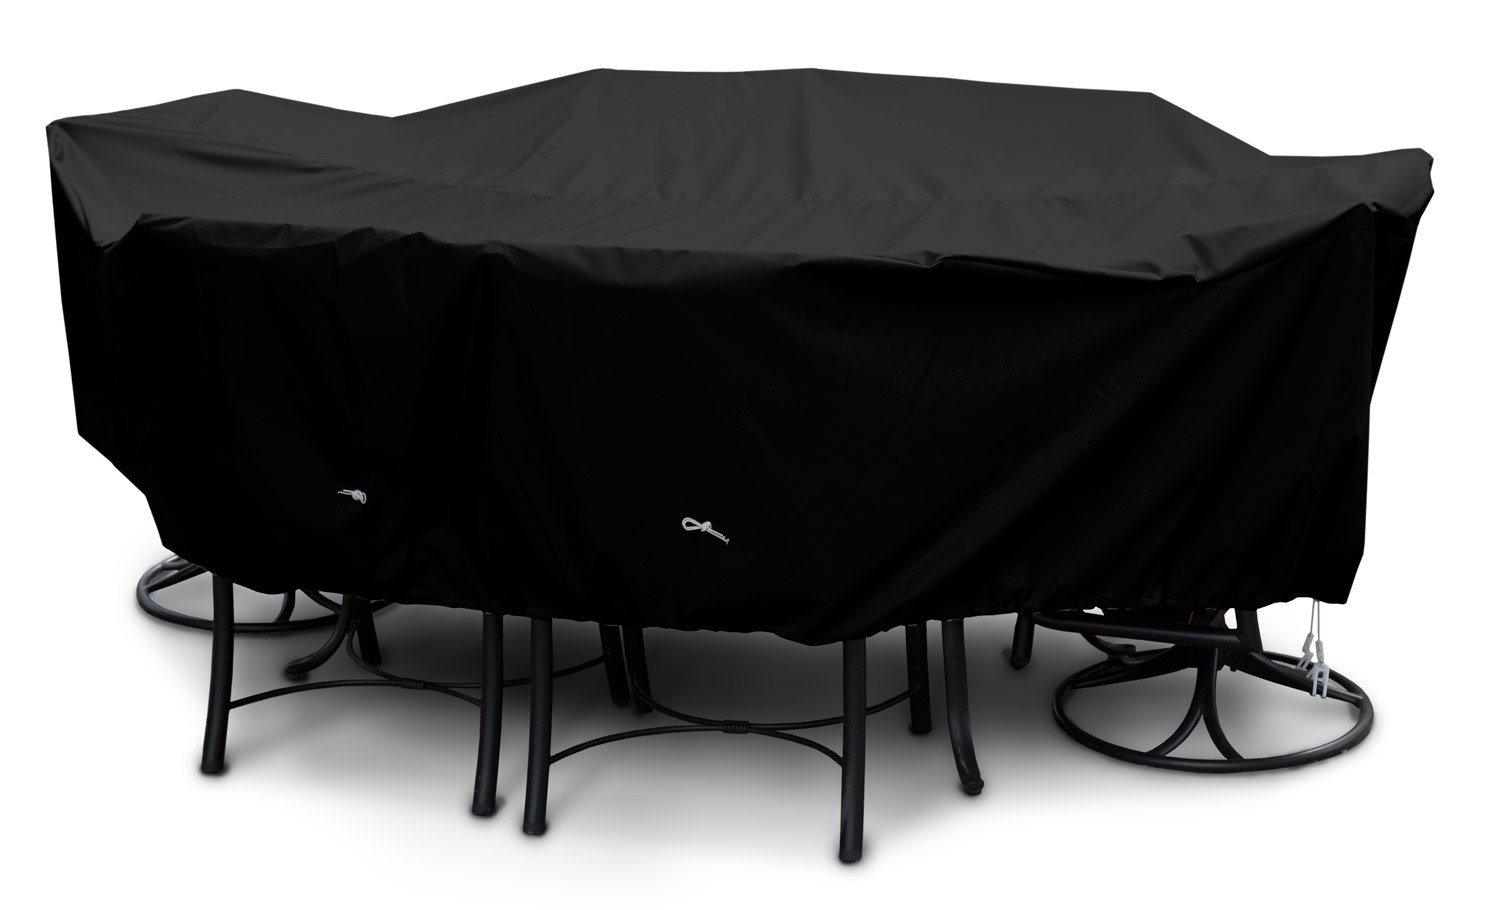 KoverRoos Weathermax 79484 X-Large High Back Dining Set Cover, 121 by 86 by 34-Inch, Black